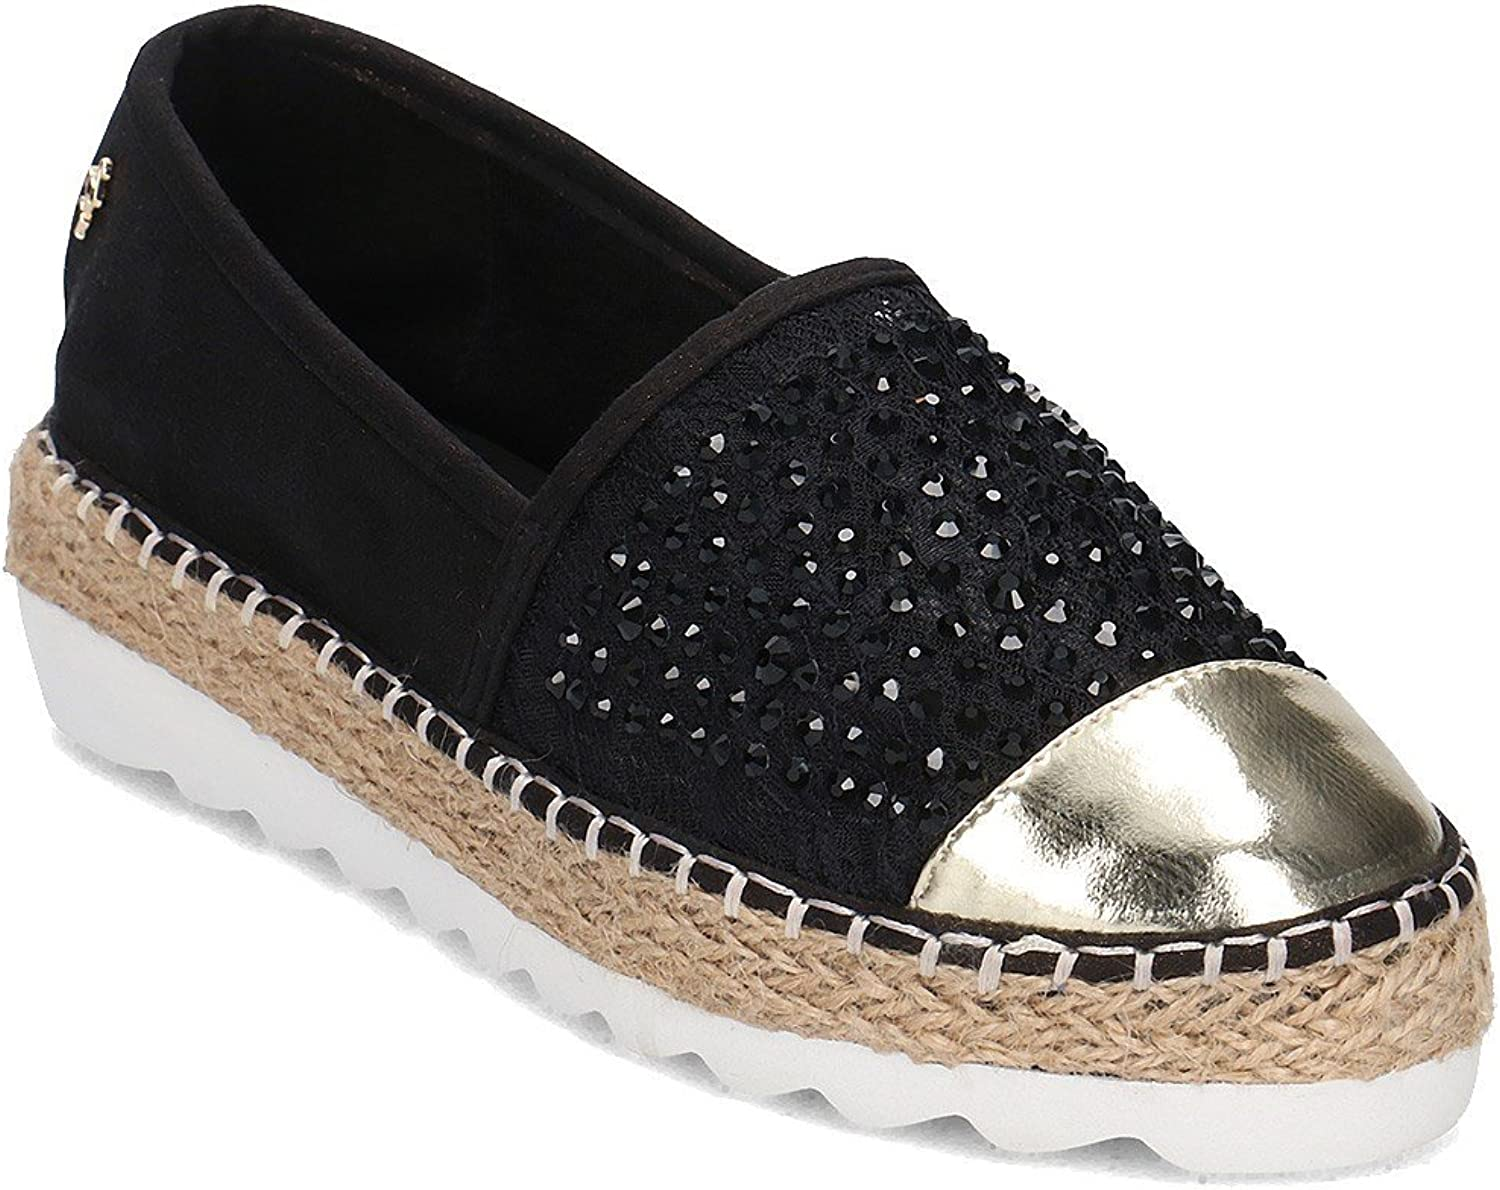 Menbur 07995 shoes Espadrilles Woman Black